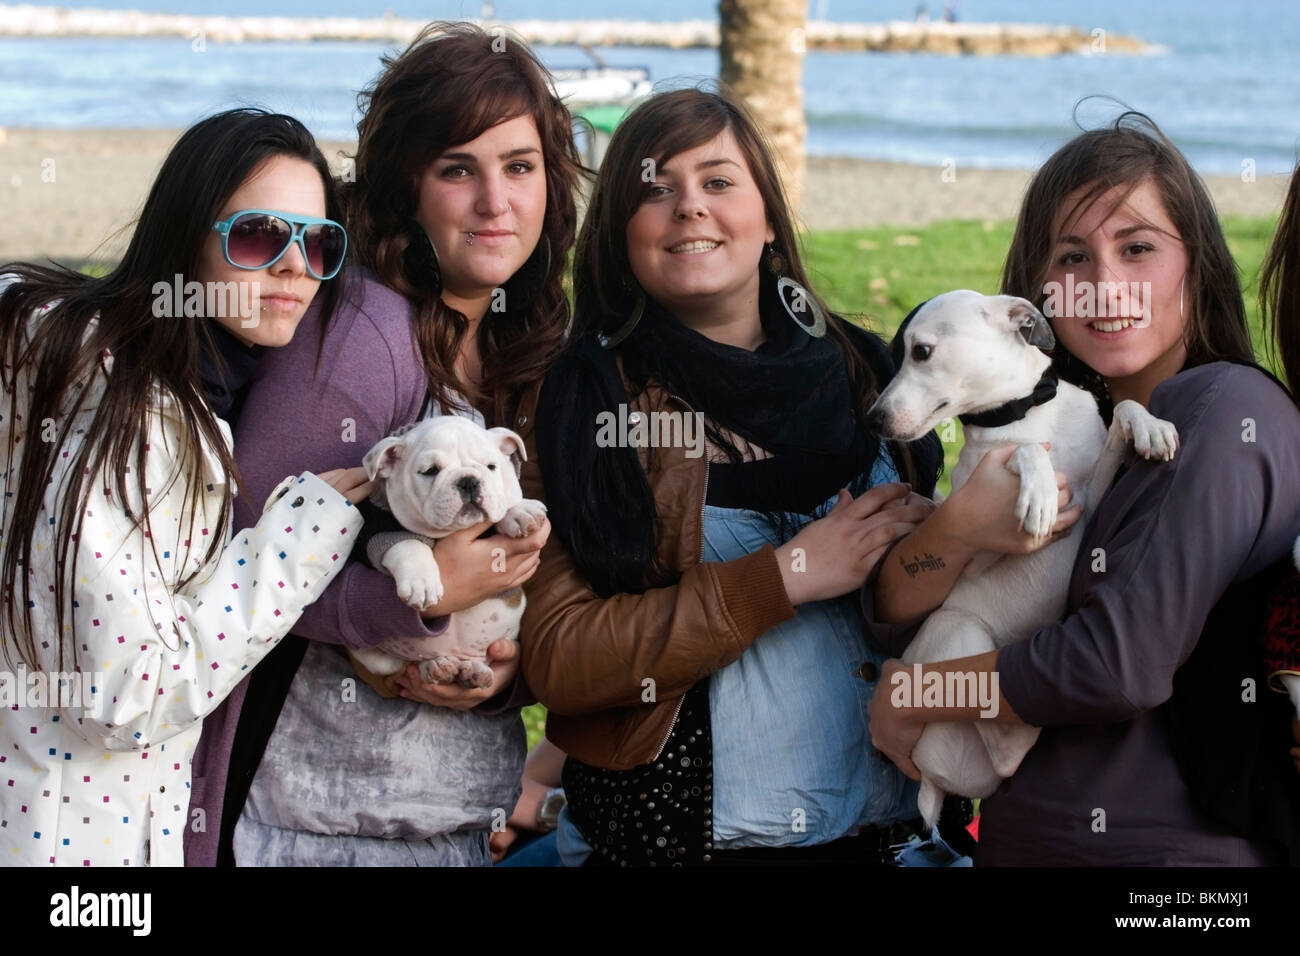 Girls and their puppies - Stock Image